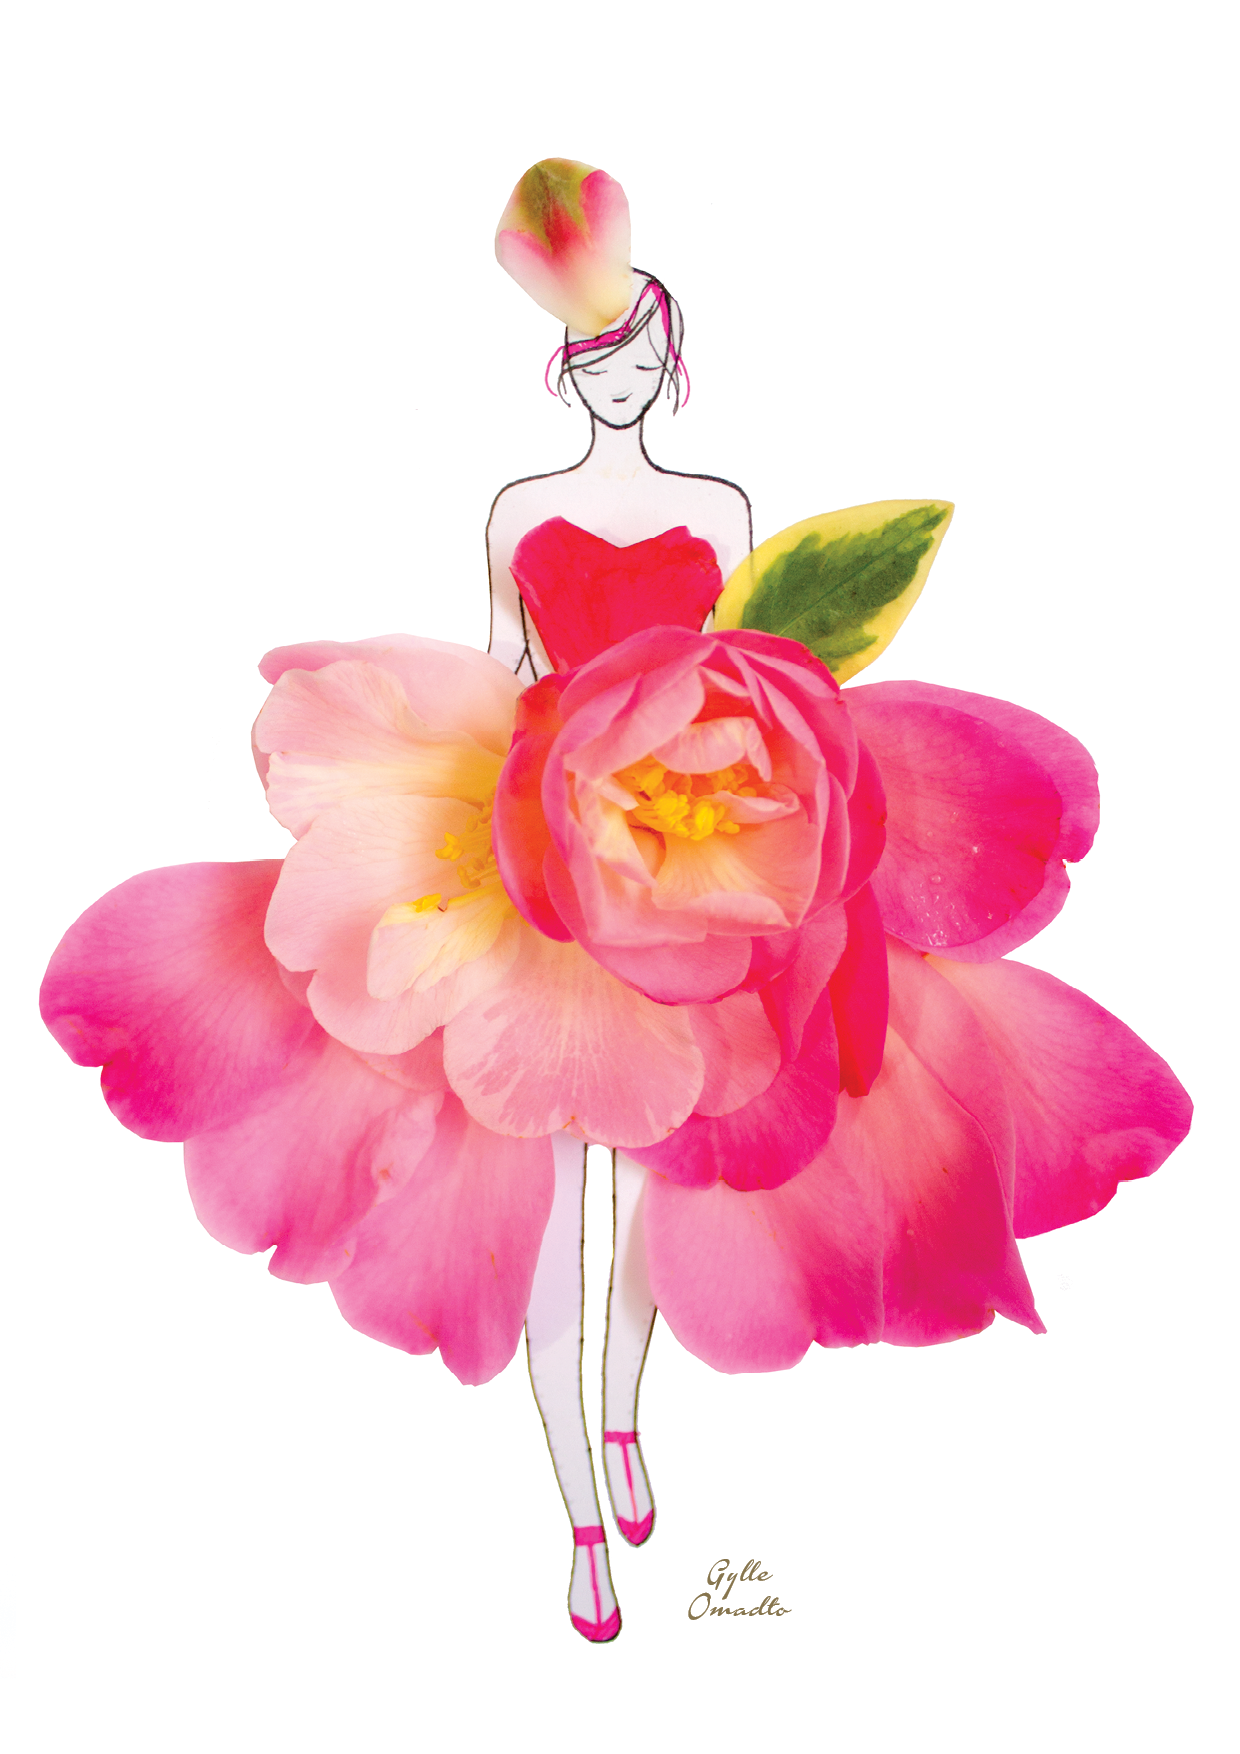 Fashion Illustrations With Real Flower Petals As Clothing Made Of Real Flower Flower Art Flower Drawing Flower Petal Art